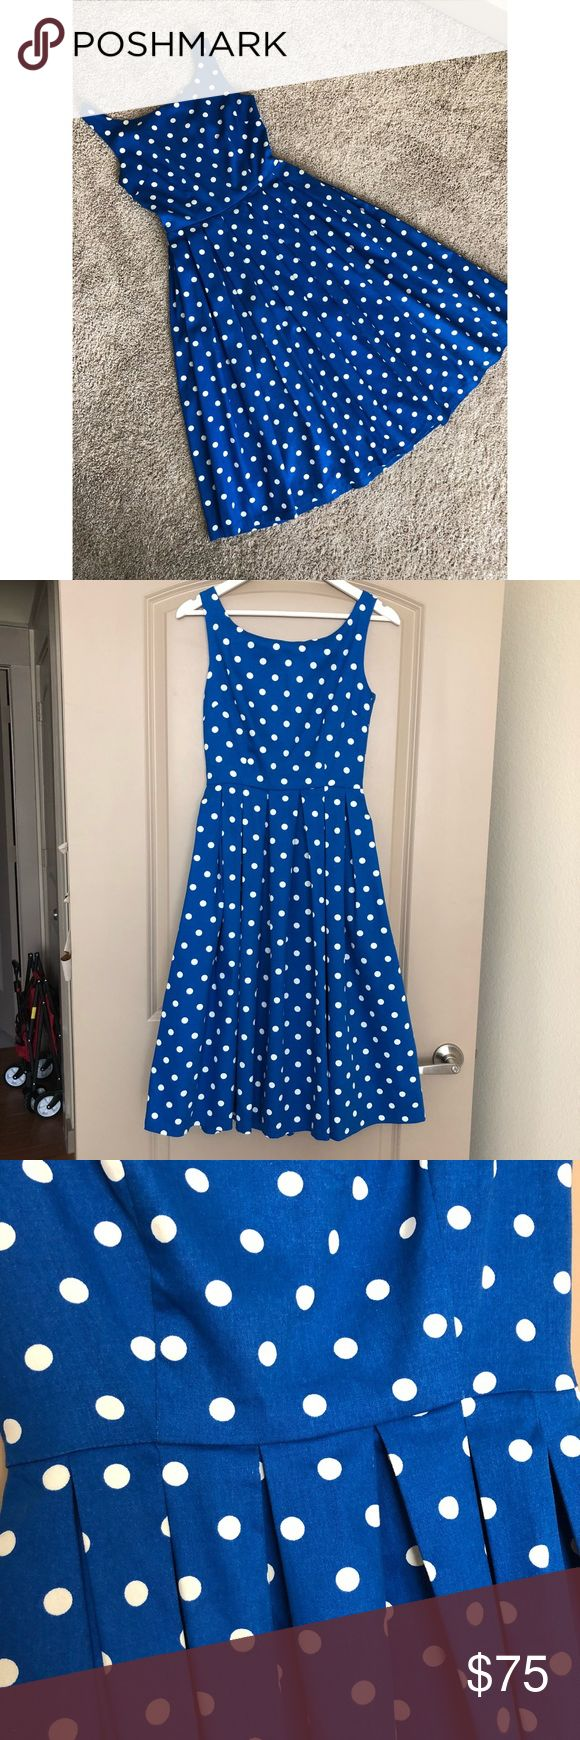 NWT Polka Dot Pocket Midi Dress NWT royal blue dress with fitted bodice, concealed back zipper, full pleated midi skirt, & POCKETS! This is preciousness in its truest form. Size 2. Runs generous. Fits size 2-6.  97% Cotton 3% Elastane  Wash cold. Dresses Midi